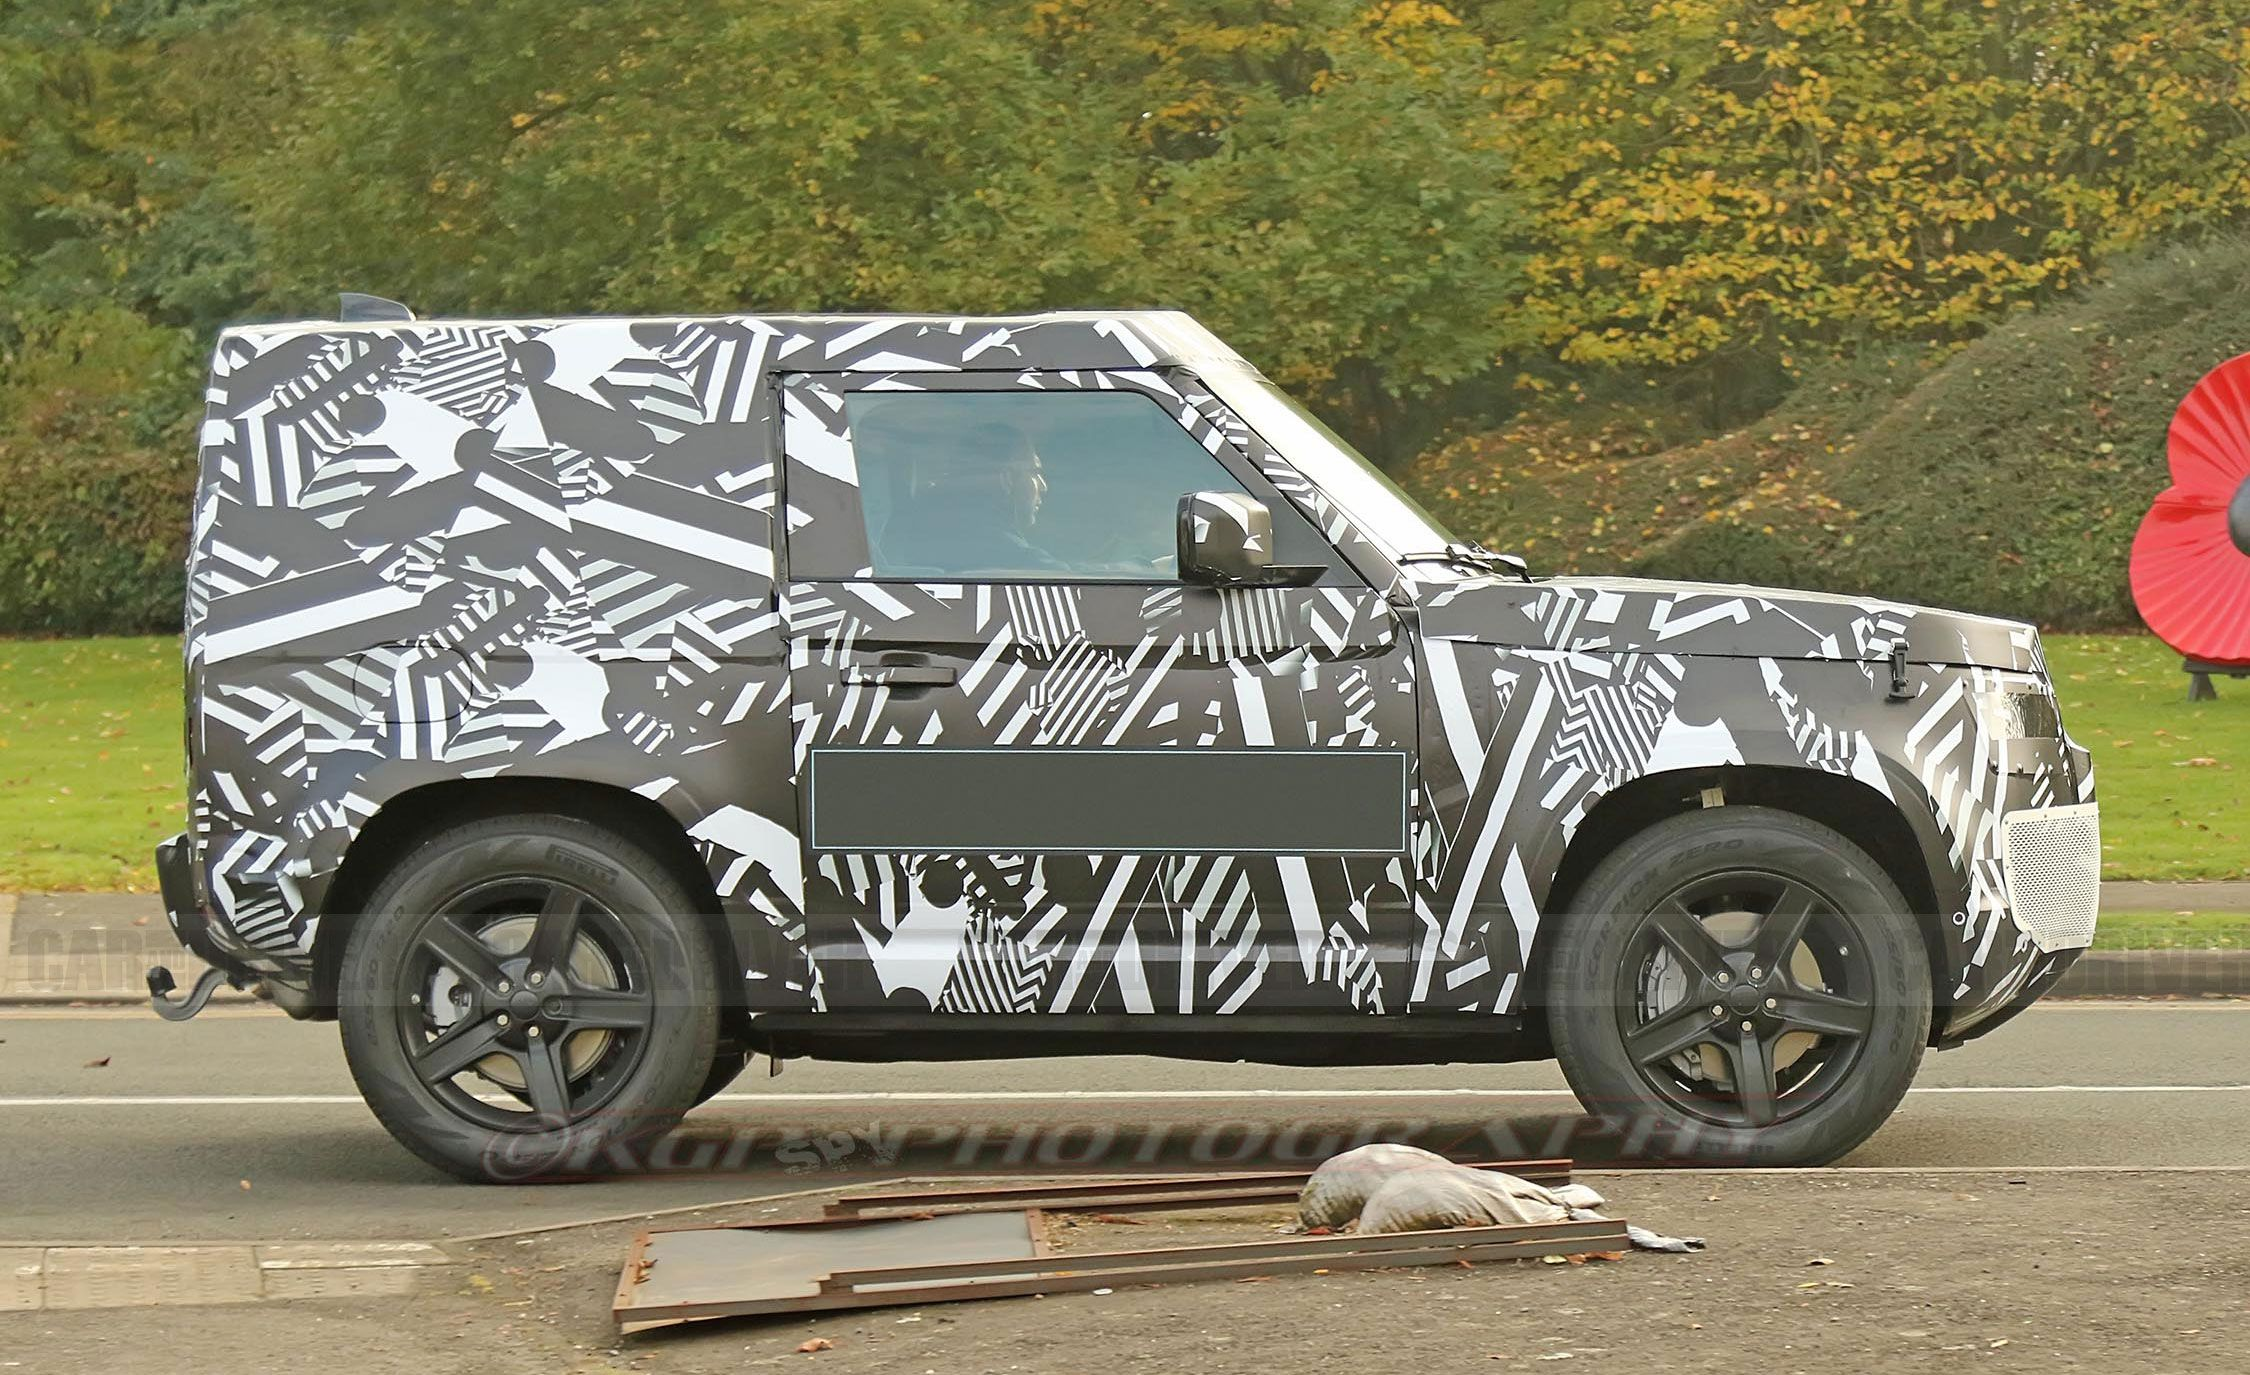 2020 Land Rover Defender Spy Shots - New Land Rover SUV Pictures